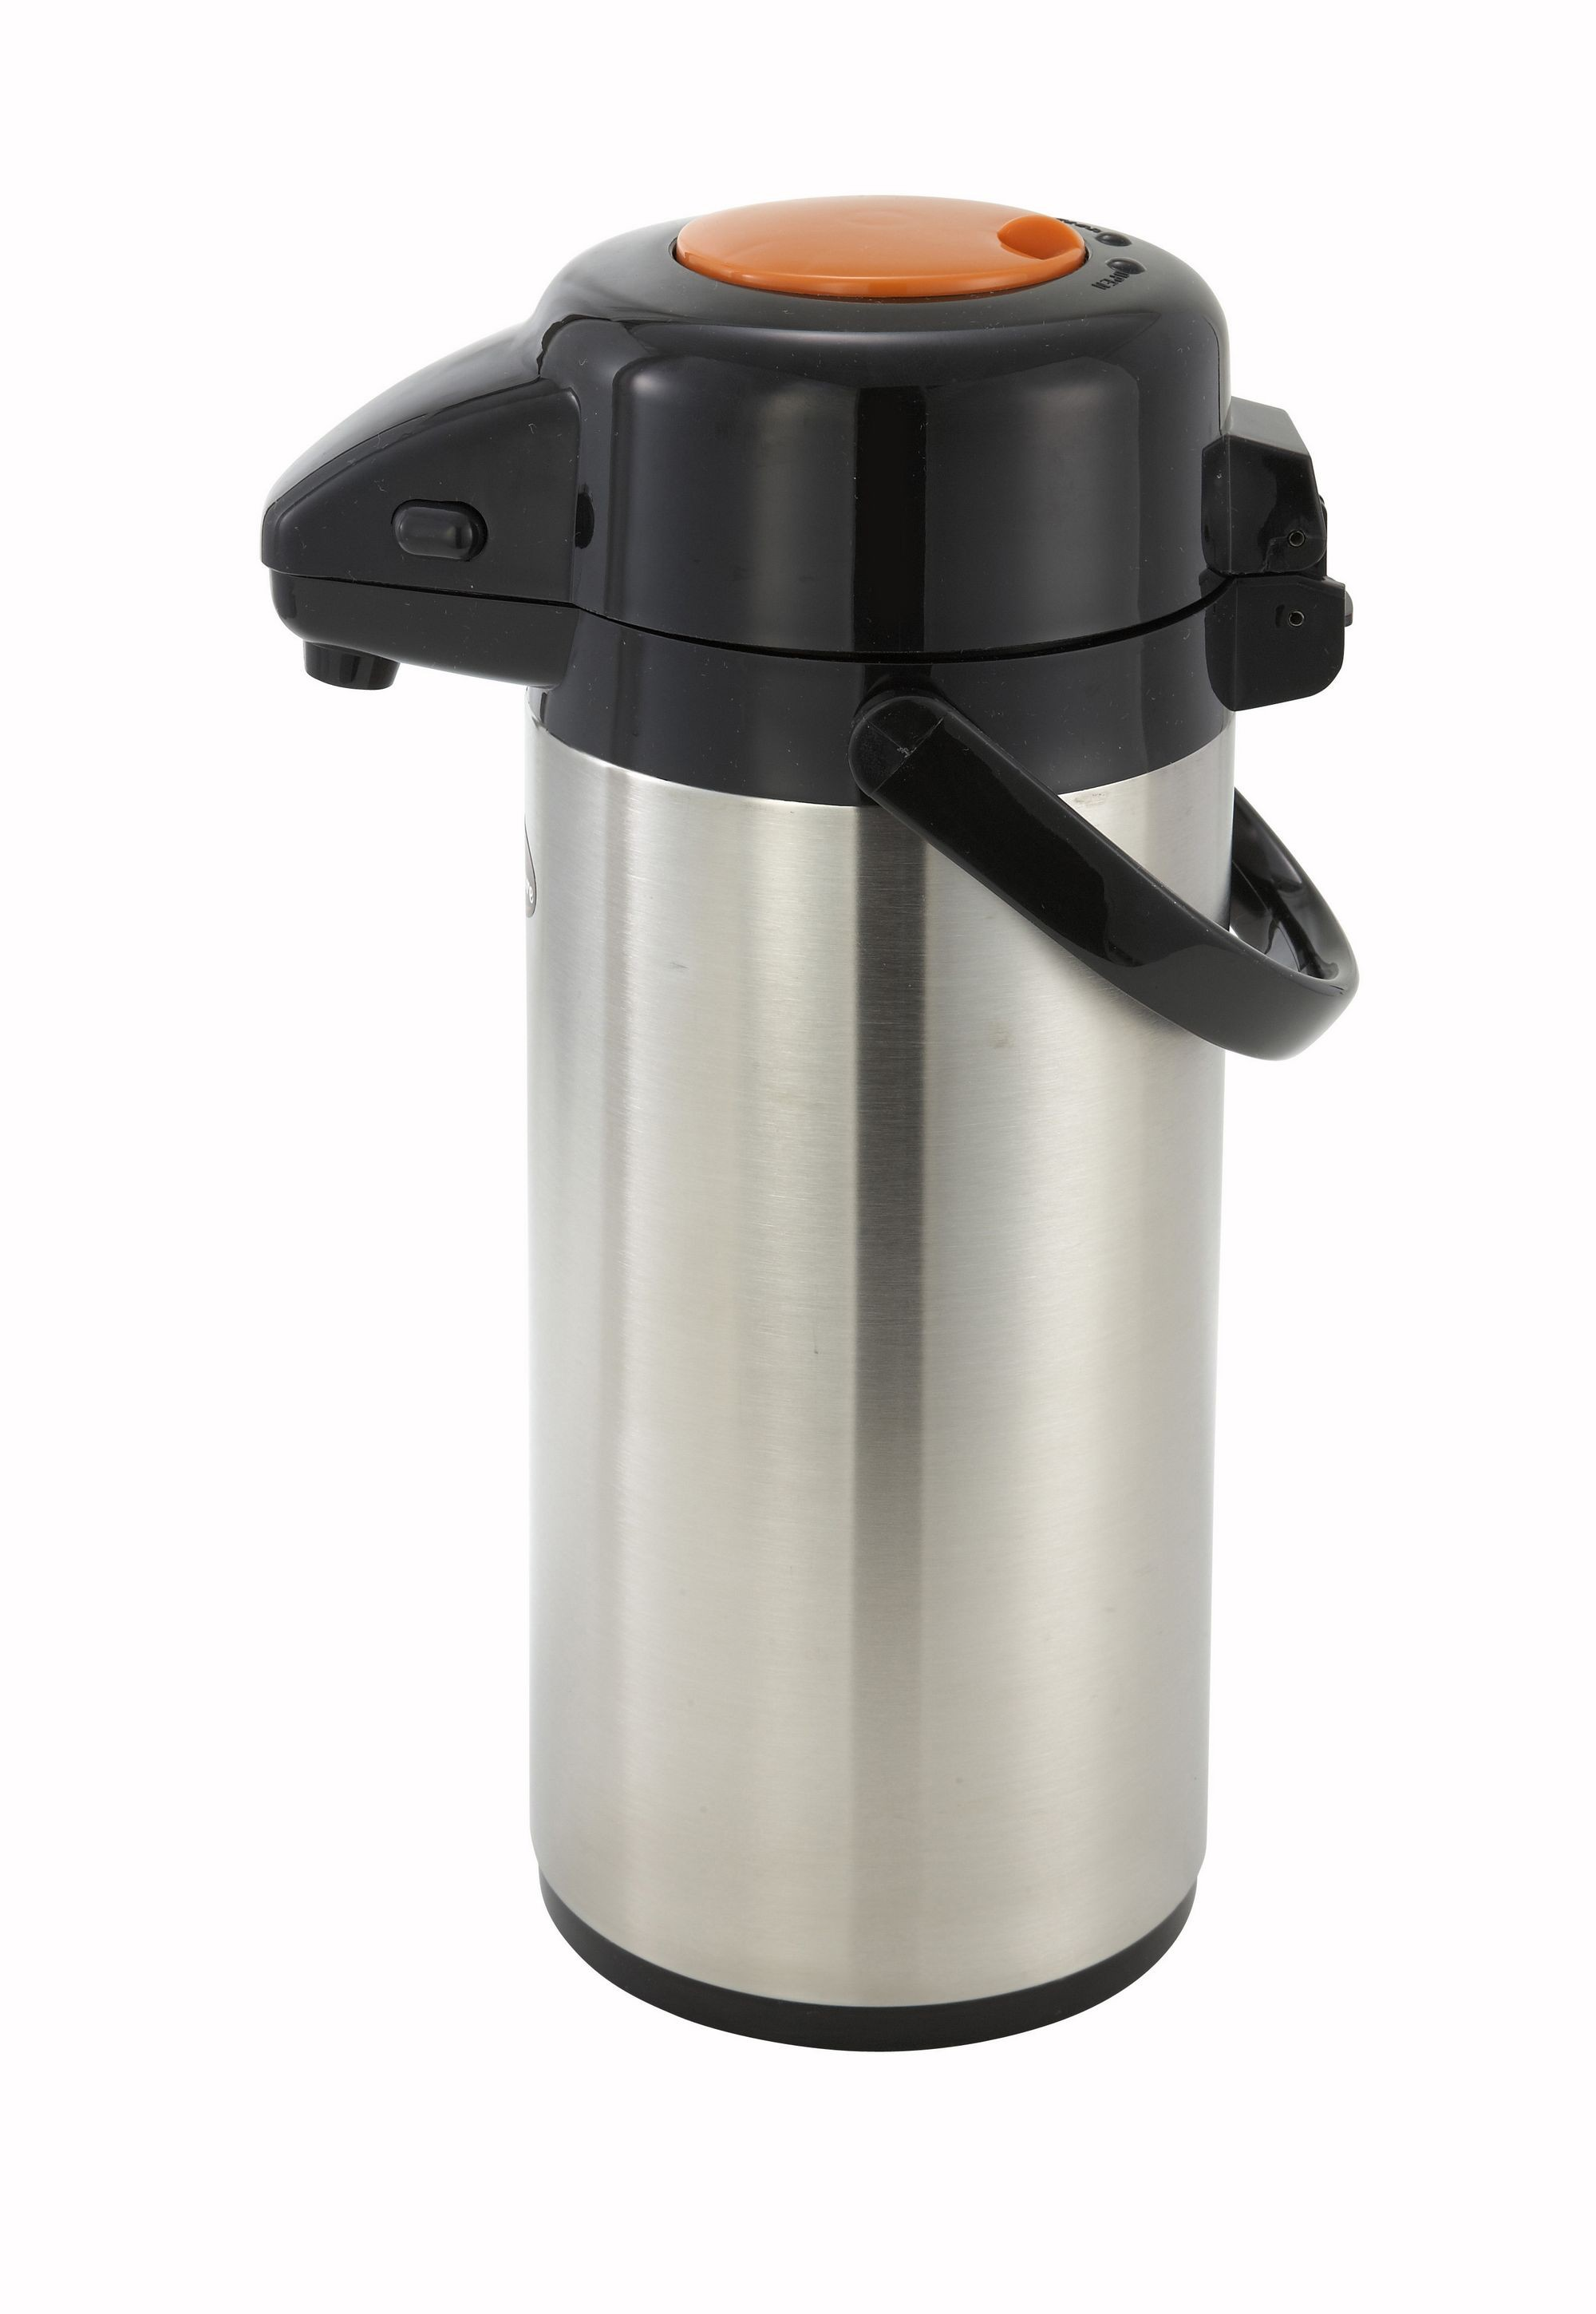 Winco apsp-925dc Decaf Vacuum Server with Stainless Steel Liner and Push-Button Top 2.5 Liter